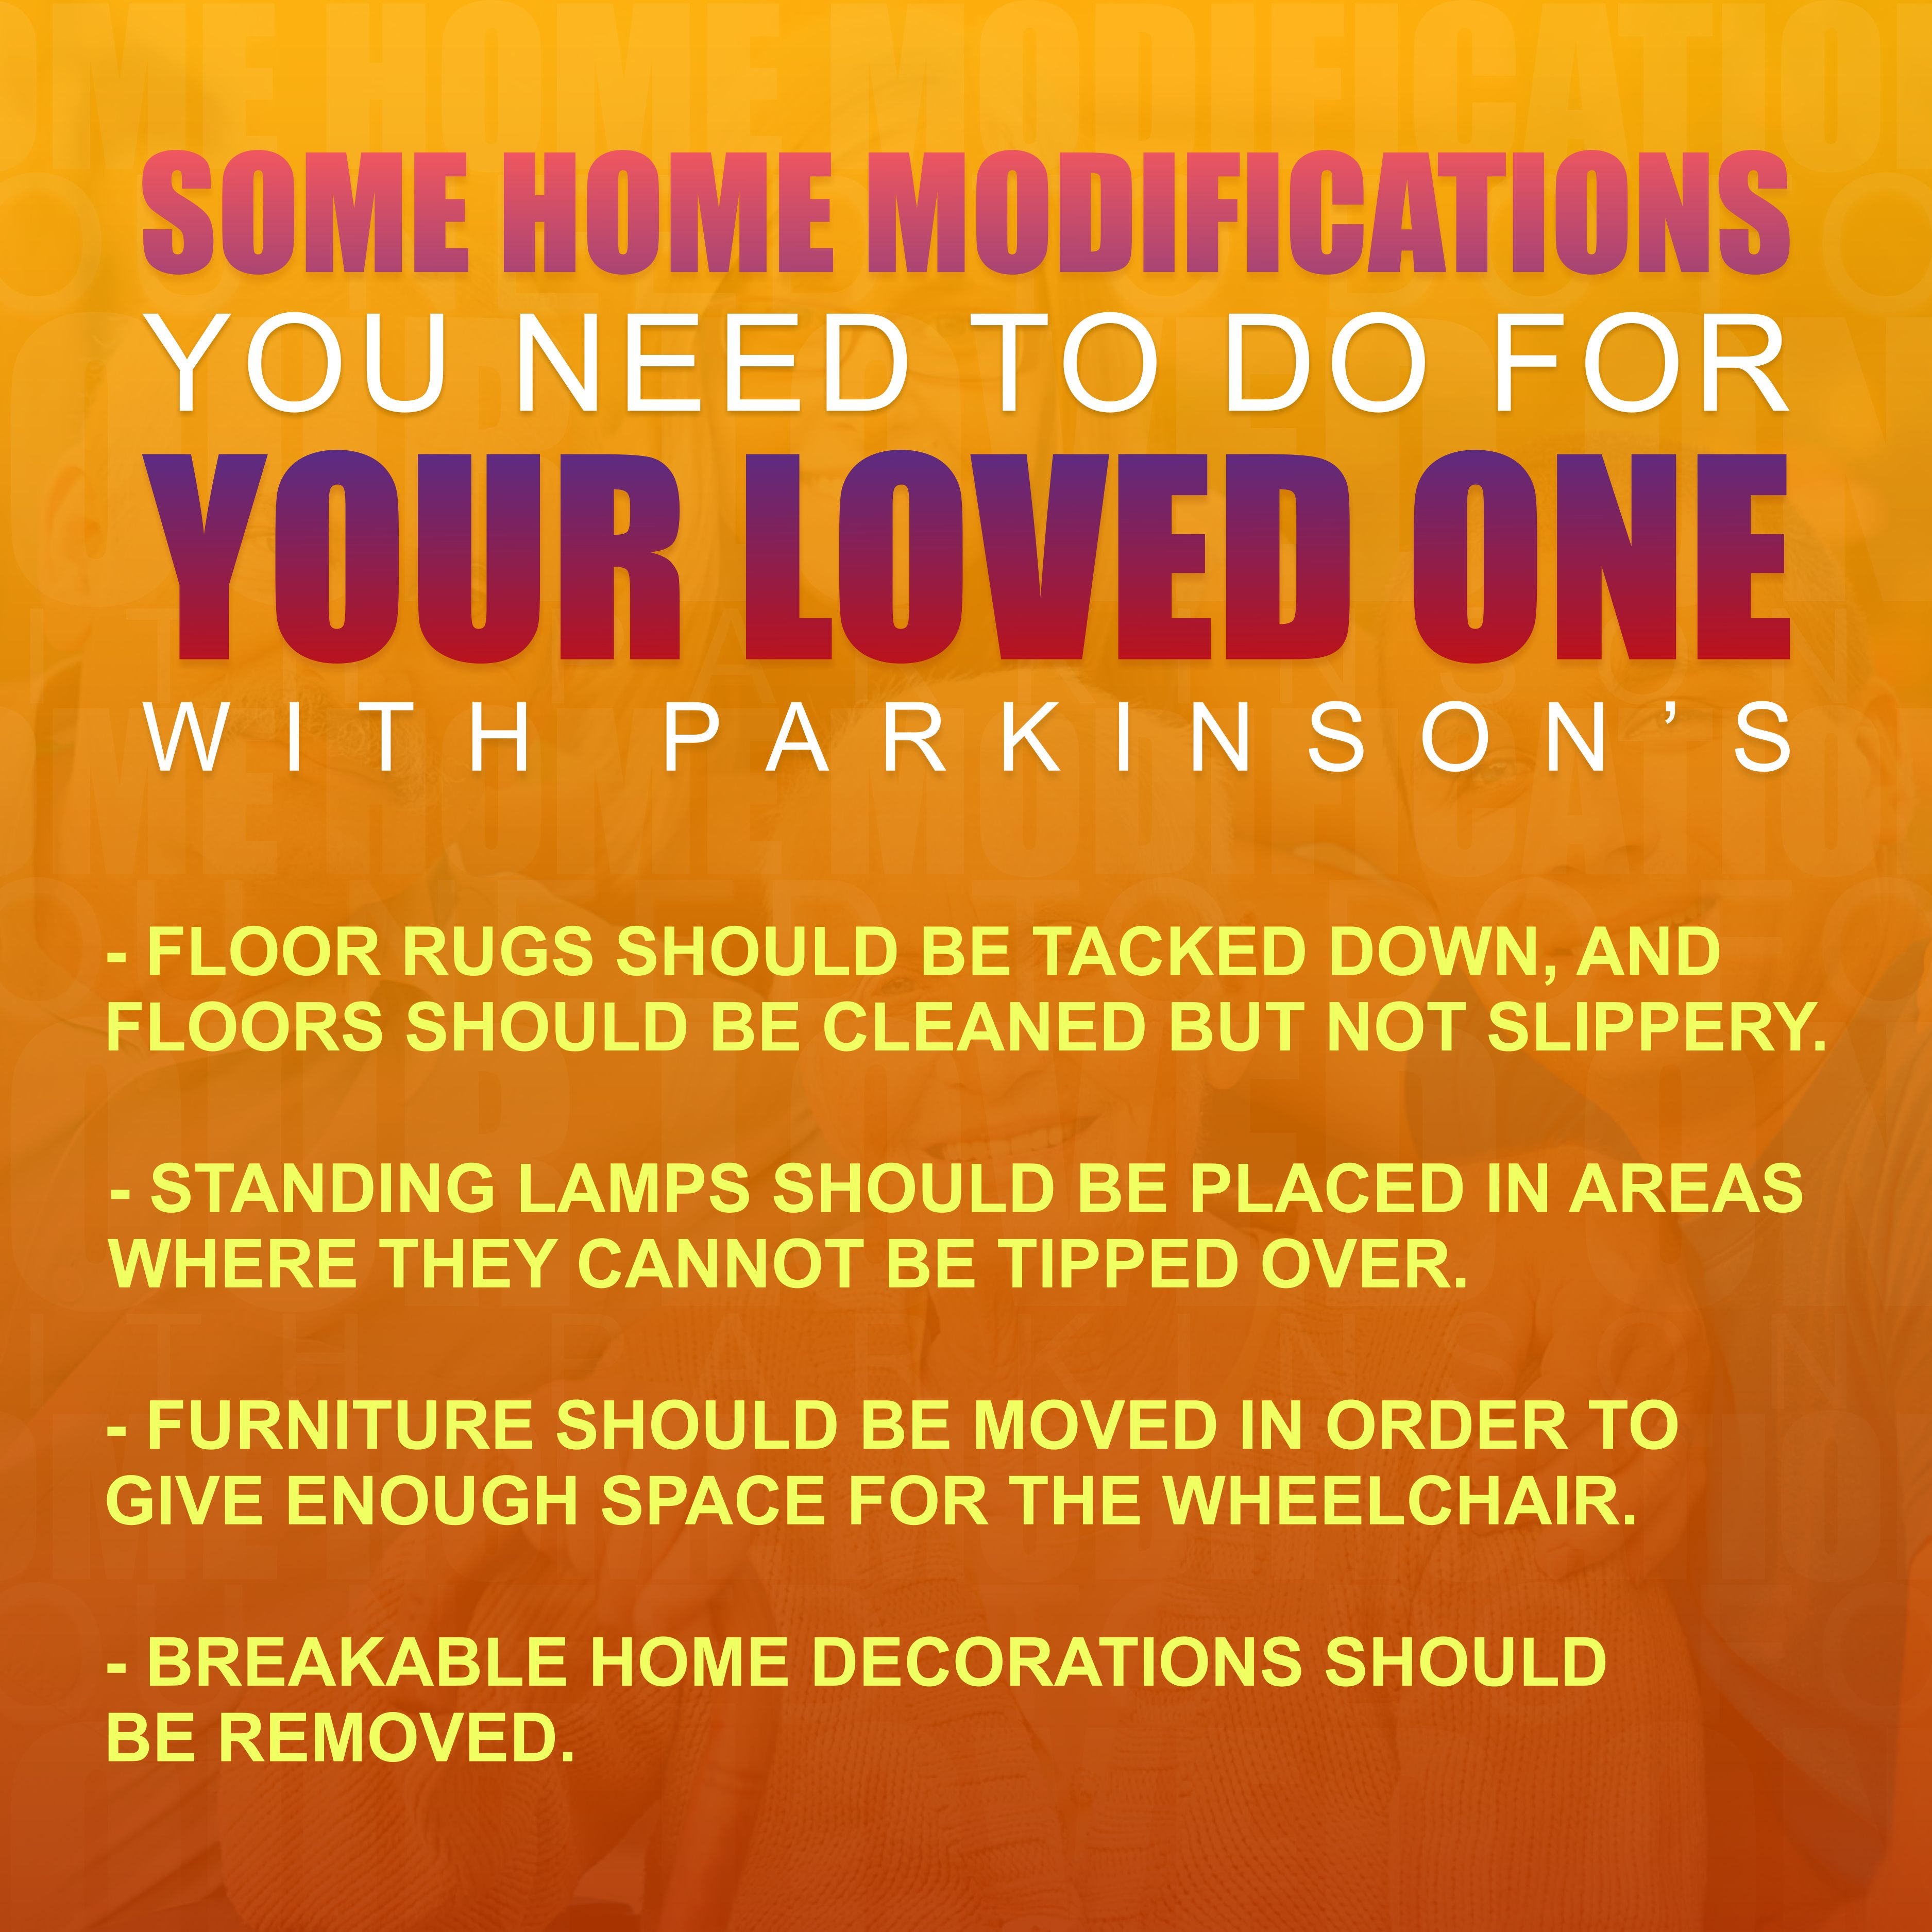 Some Home Modifications You Need To Do For Your Loved One With Parkinson S Homemodifications Mangohomehealthcare Home Health Care Home Health Modification